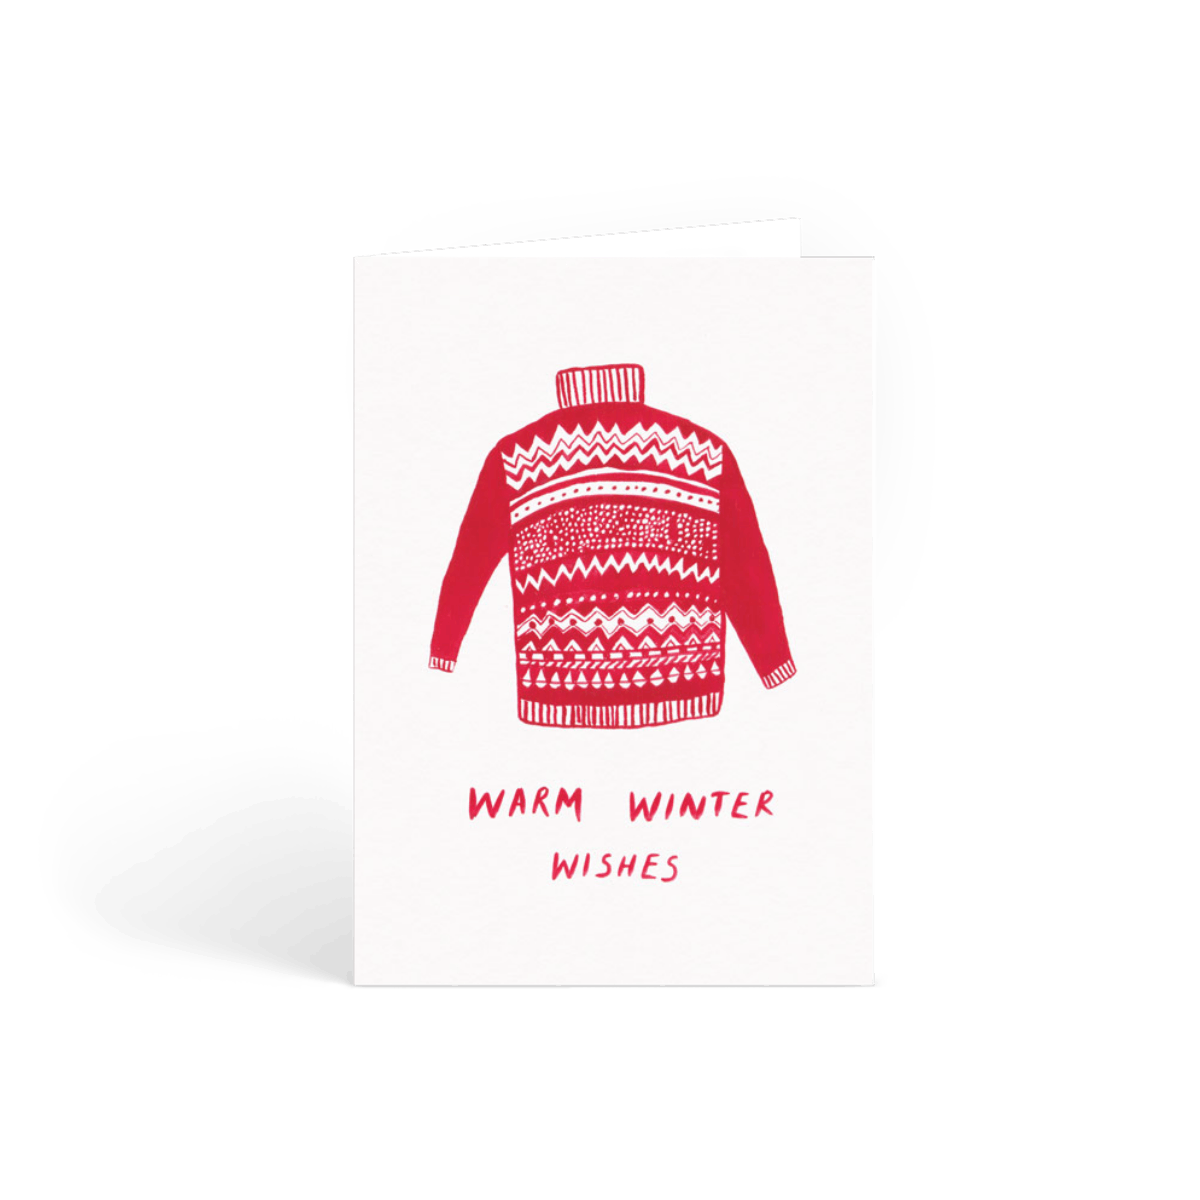 Https%3a%2f%2fwww.papier.com%2fproduct image%2f11512%2f2%2fwinter jumper 2921 front 1476094159.png?ixlib=rb 1.1